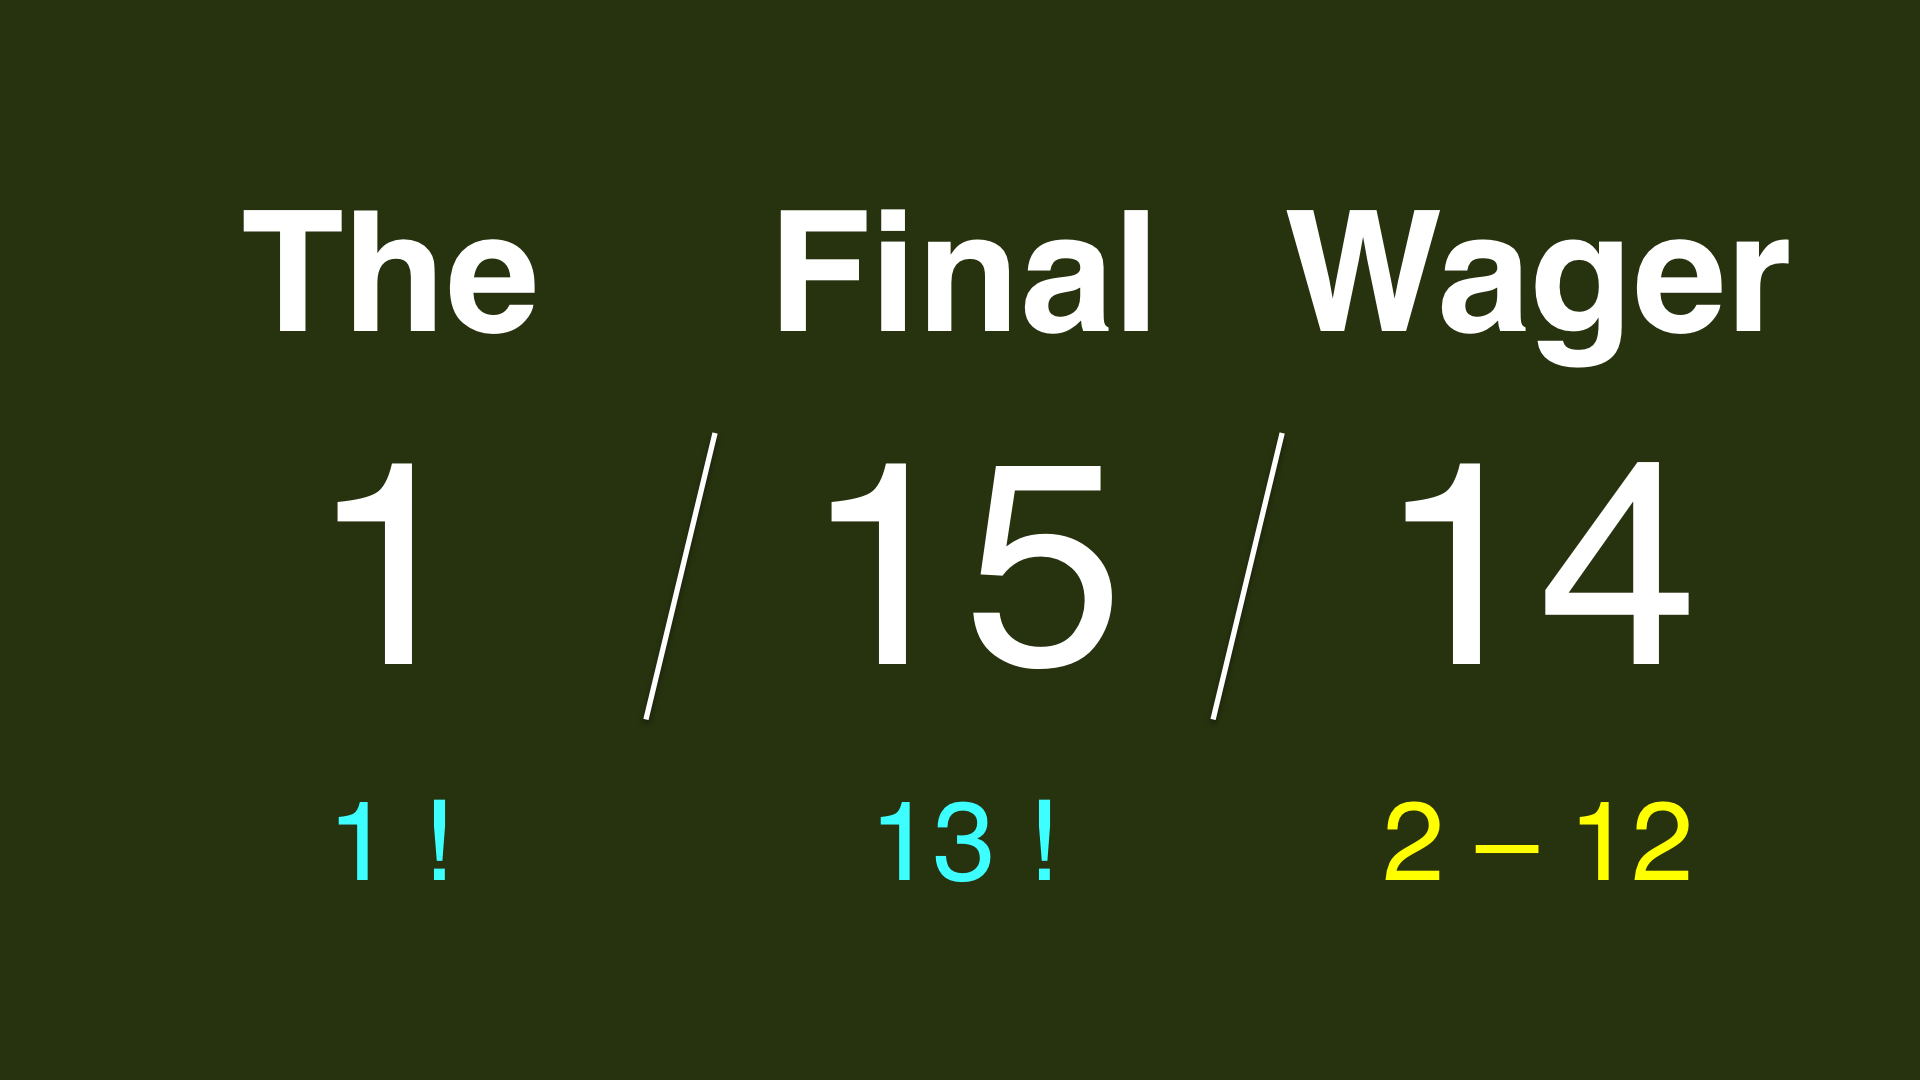 The Final Wager - January 15, 2014